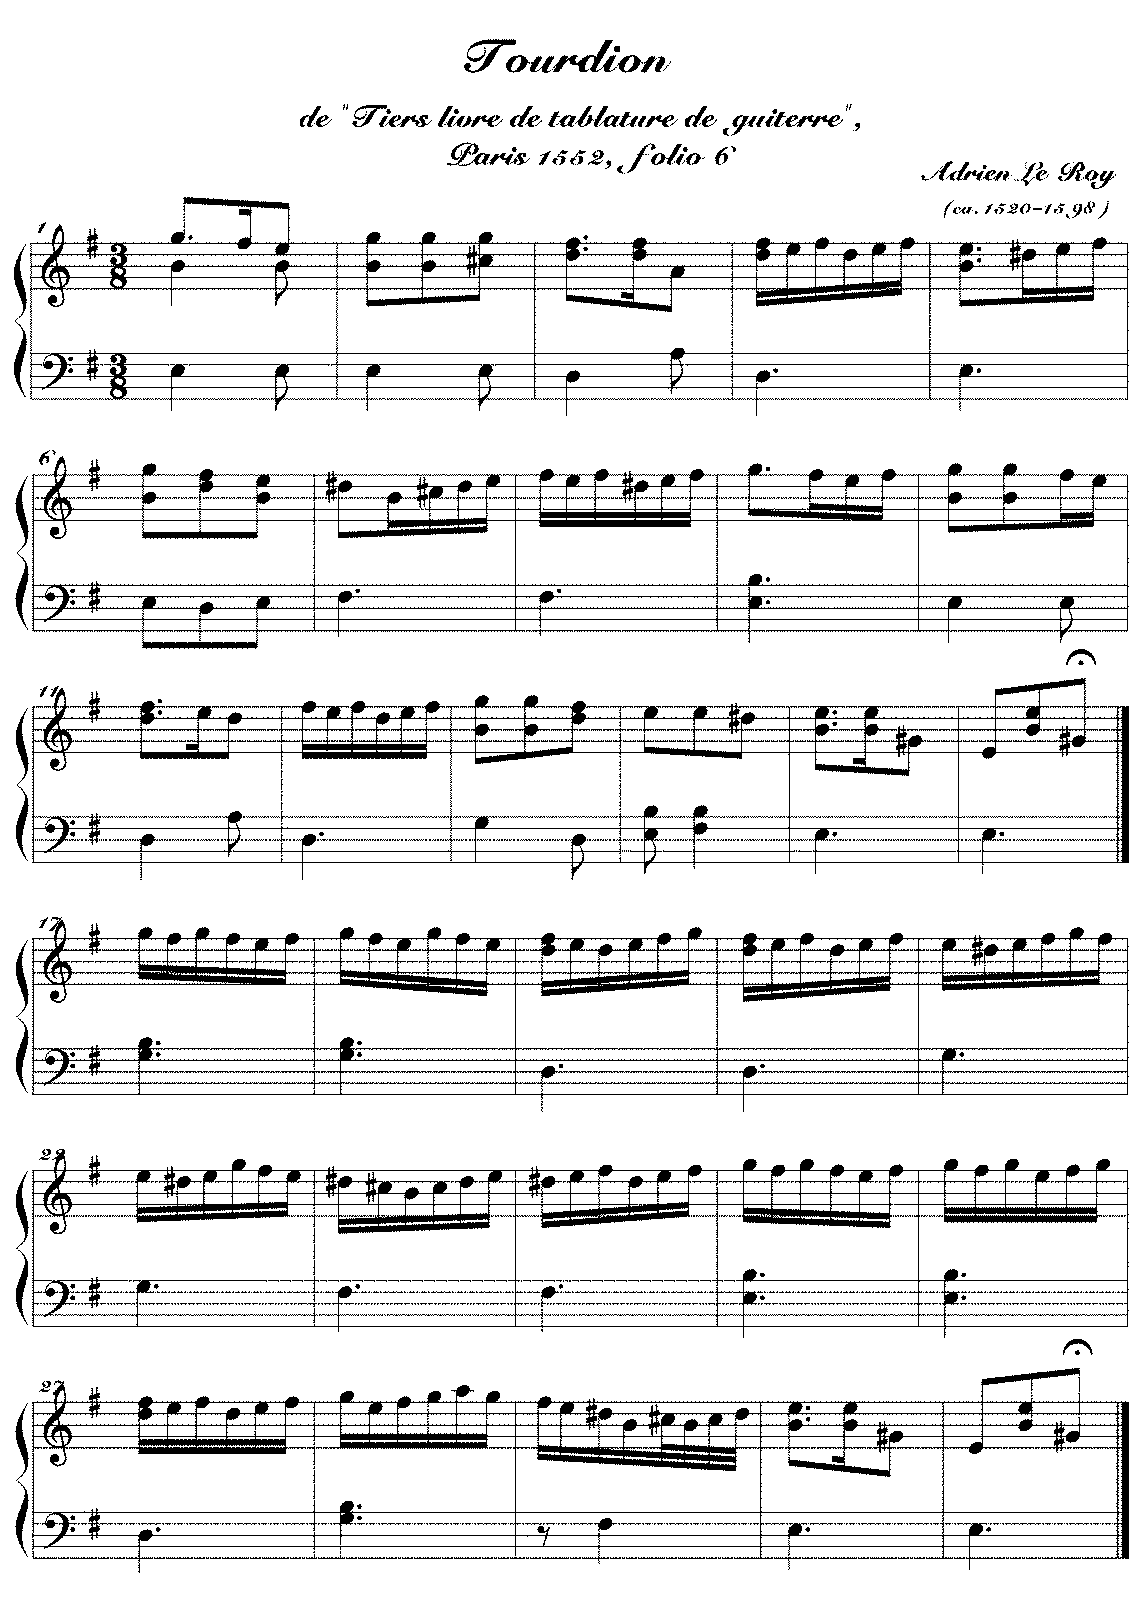 WIMA.fafa-Adrian Le Roy Tourdion Piano.pdf